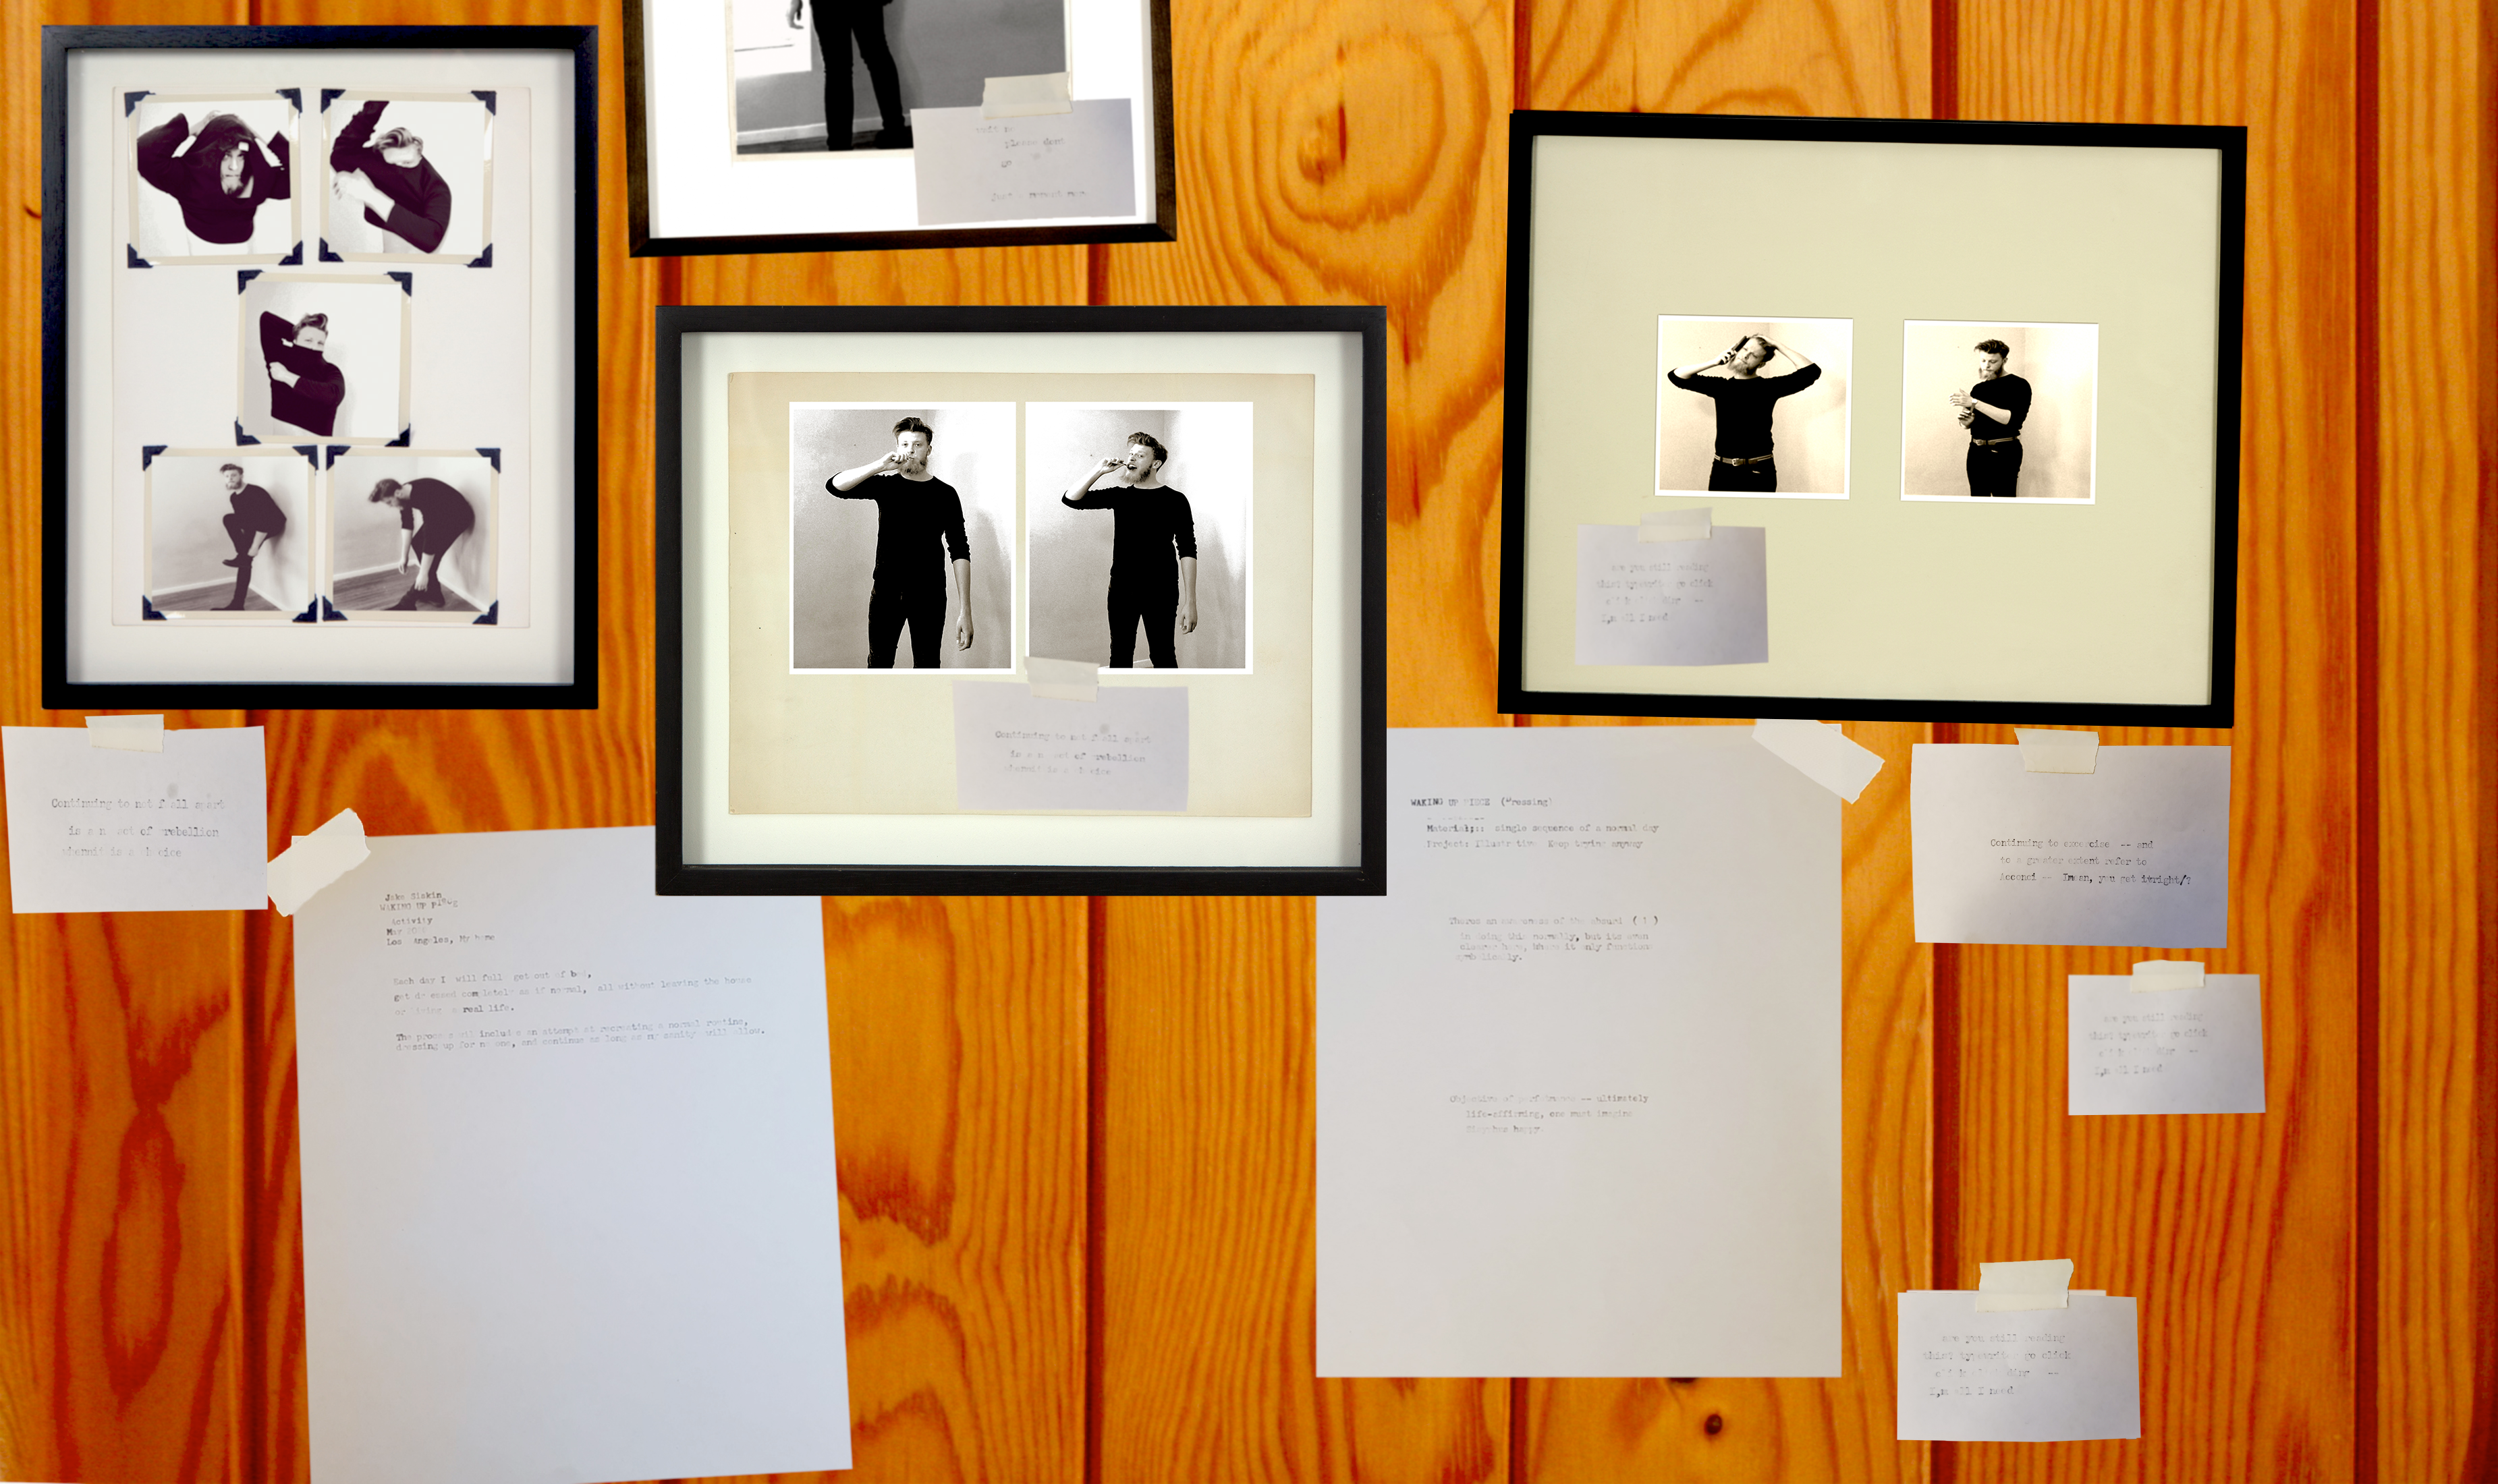 collage of framed photos and notes of paper on a wooden backdrop